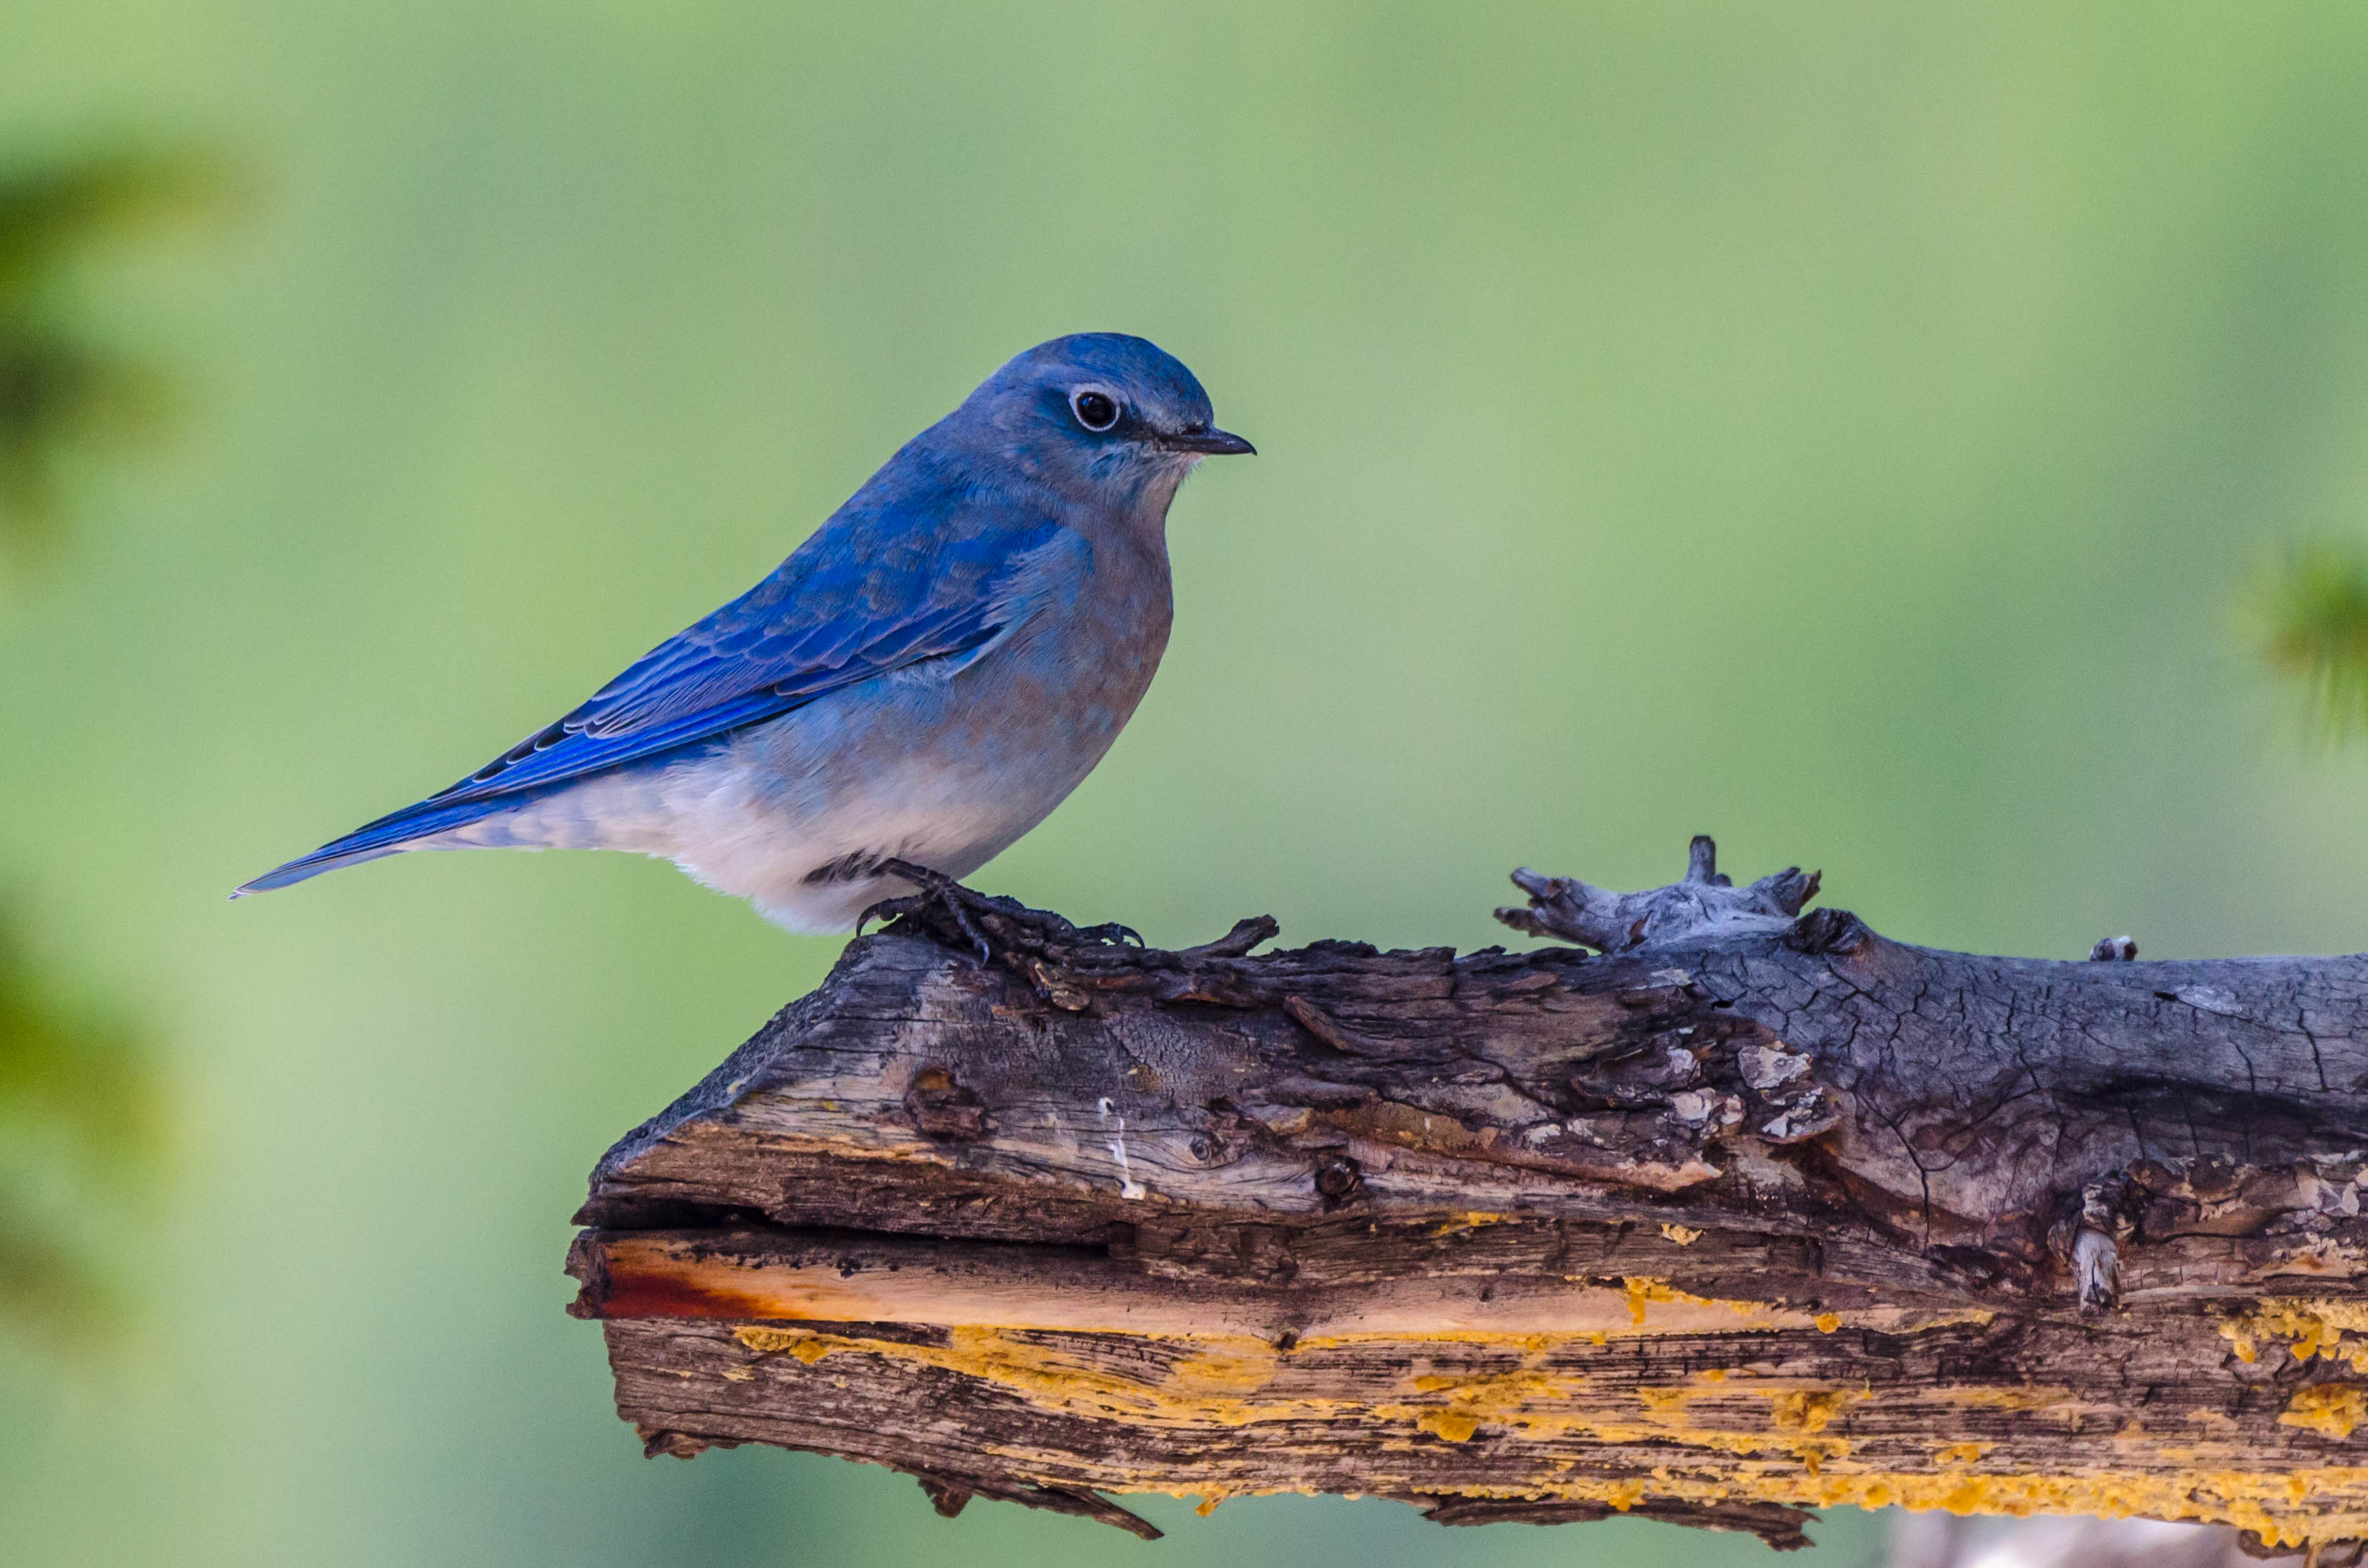 Hybrid bluebirds and why they may become more common